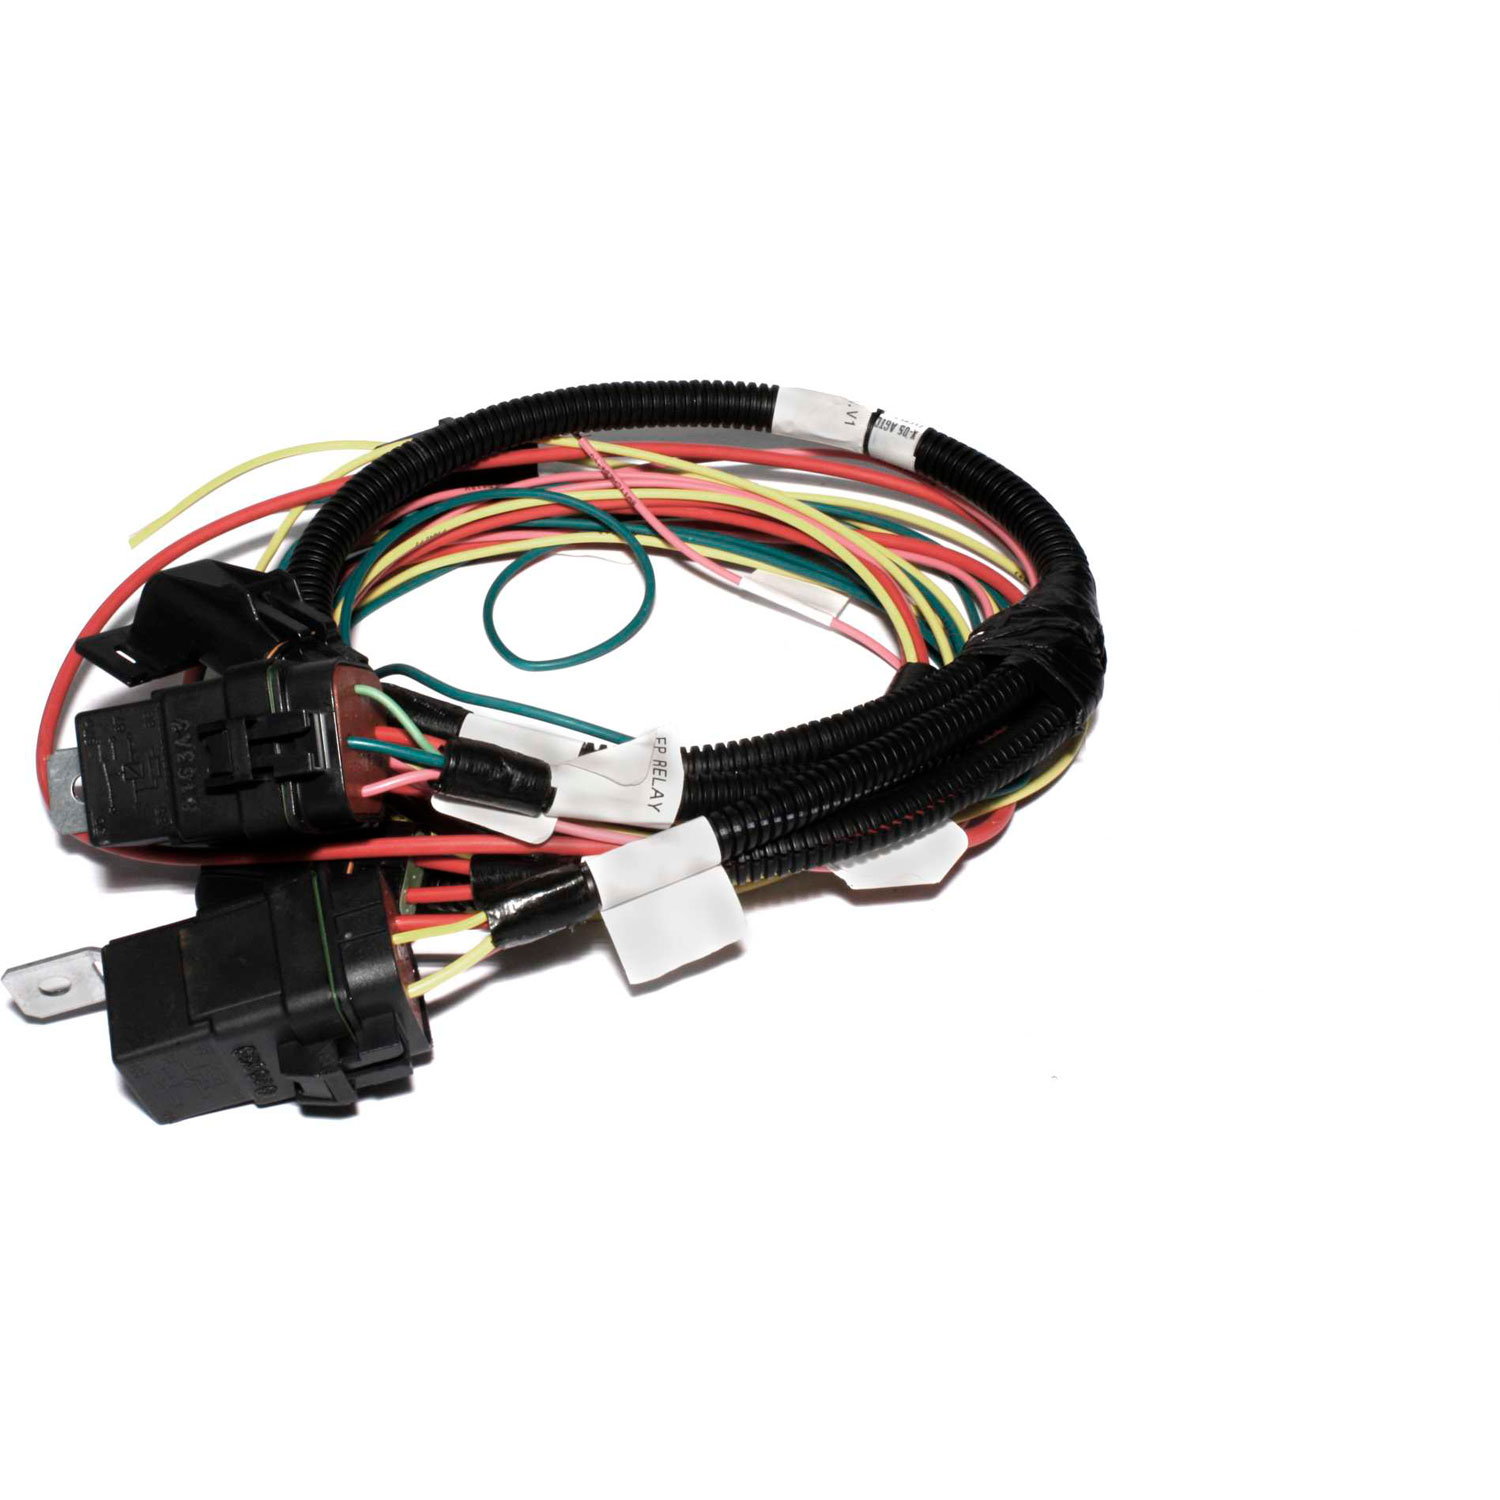 Fast Wiring Harness Gm Fan And Fuel Pump 301406